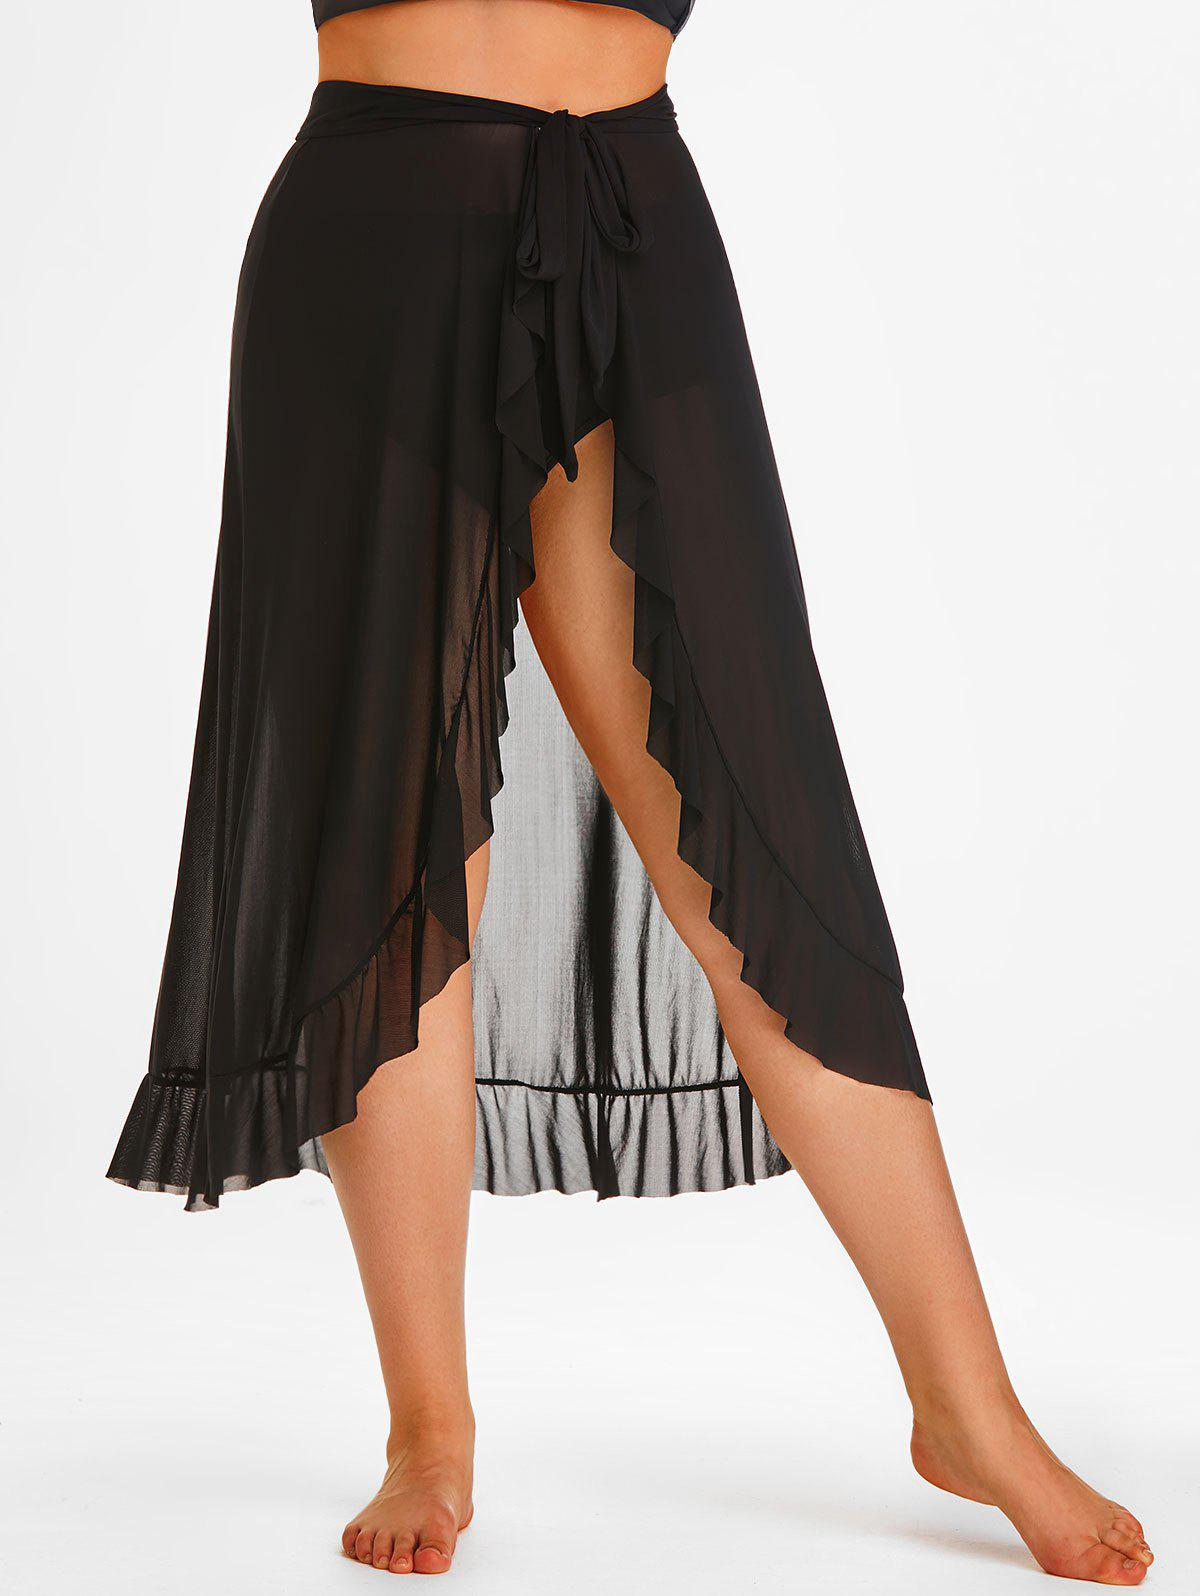 New Plus Size Self-tie Ruffle Mesh Sarong with Briefs